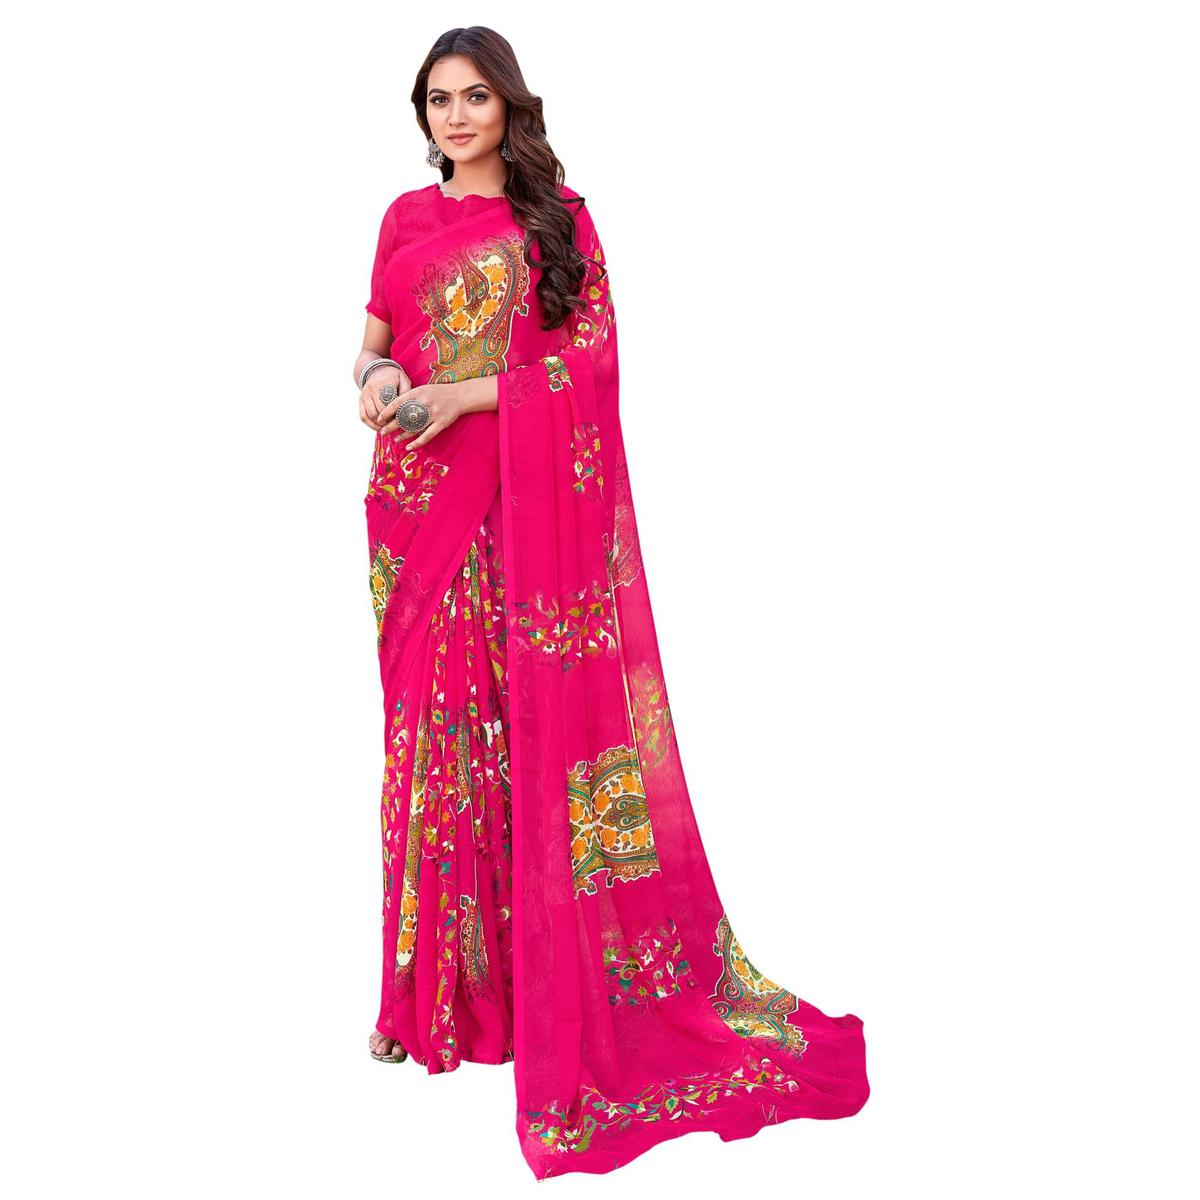 Triveni Pink Color Chiffon Casual Wear Abstract Printed Saree With Blouse Piece